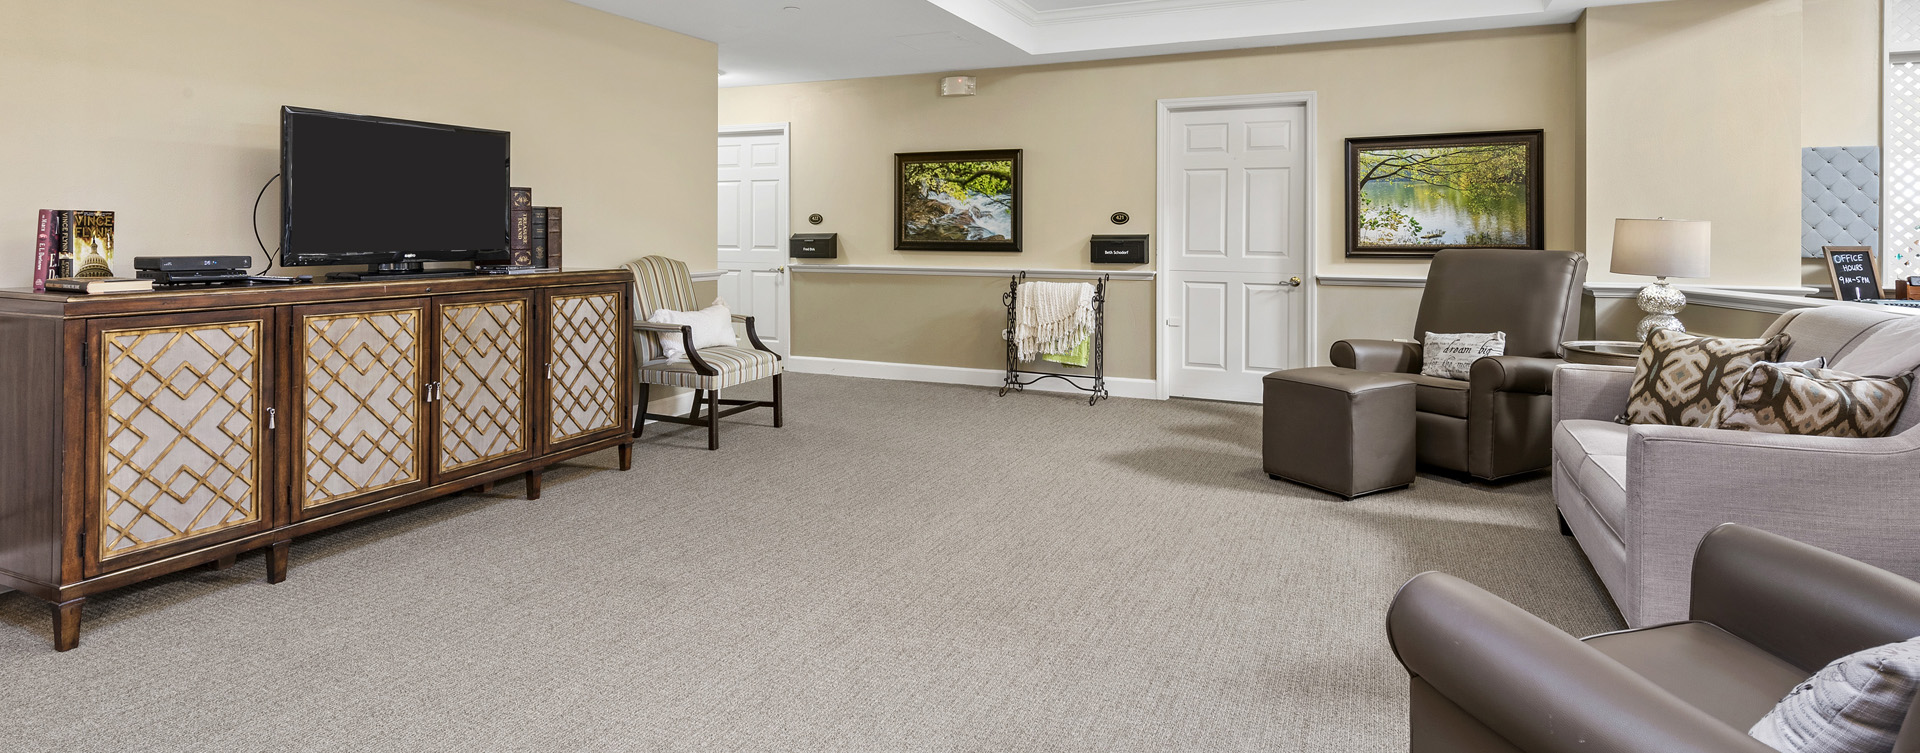 Residents can enjoy furniture covered in cozy fabrics in the Mary B's living room at Bickford of Worthington